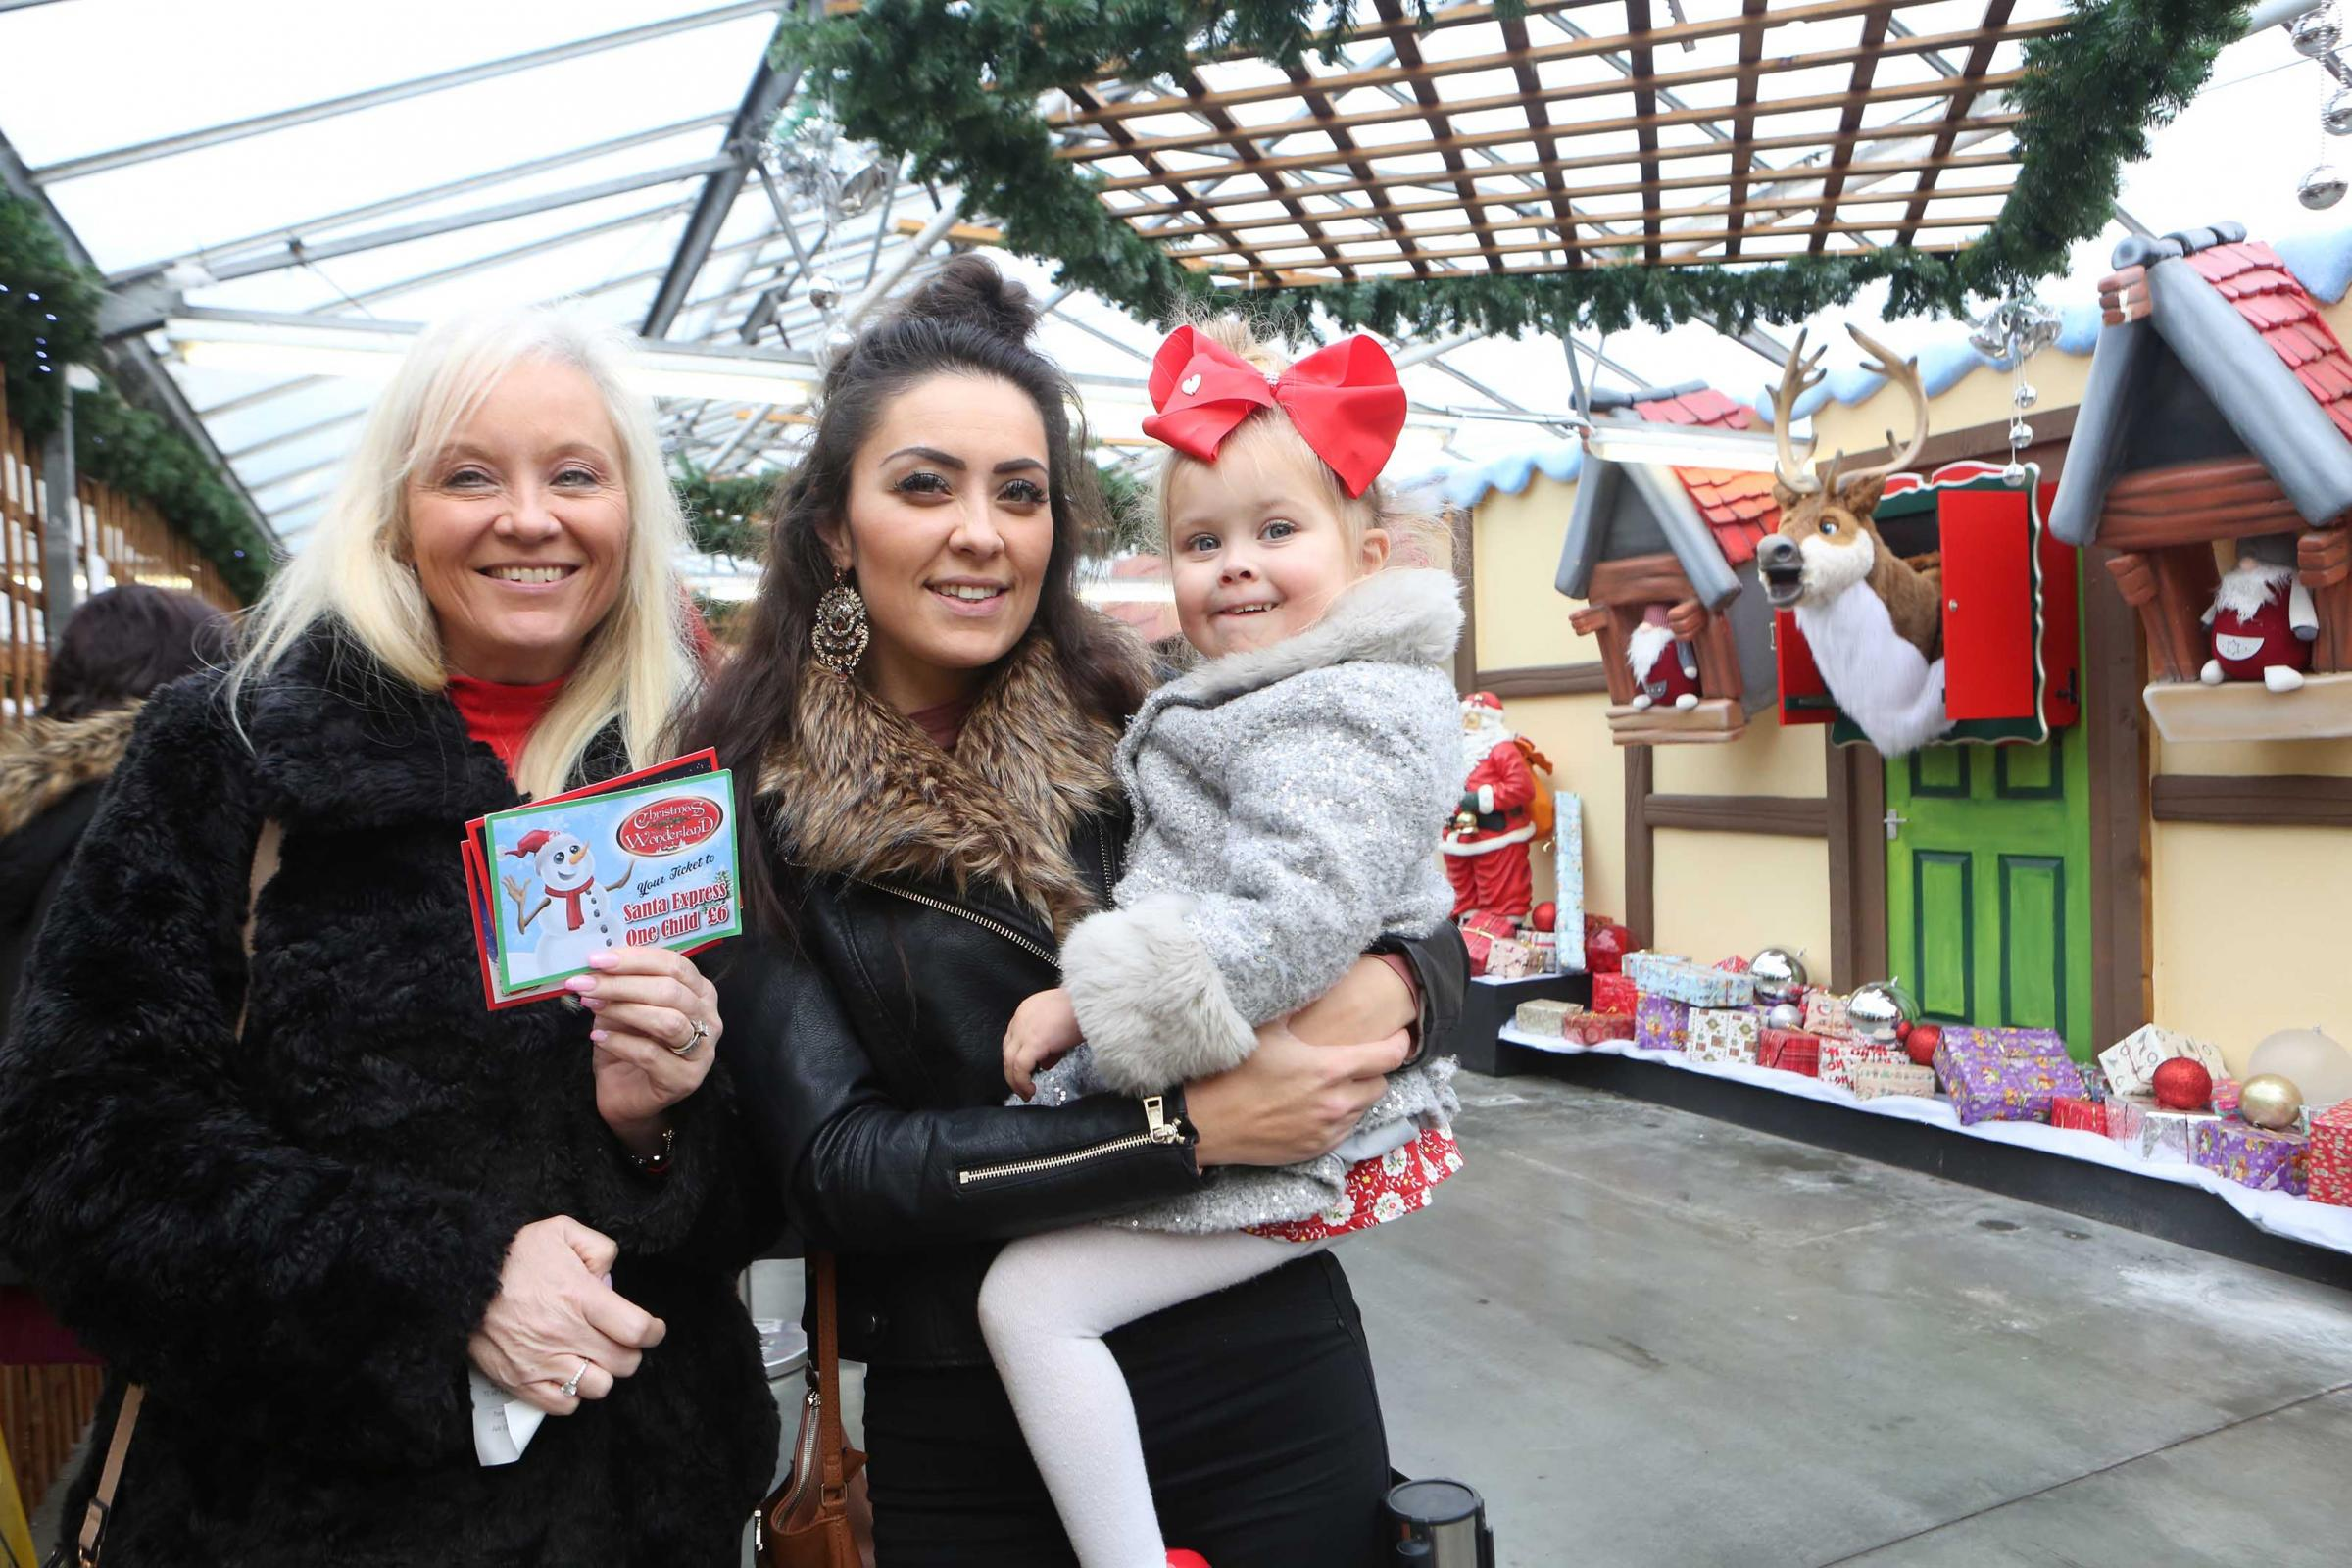 Sonia, Lorena and Mya Fisk turned enjoyed a visit to Christmas Wonderland in December after Tendring Council threatened the attraction with High Court action